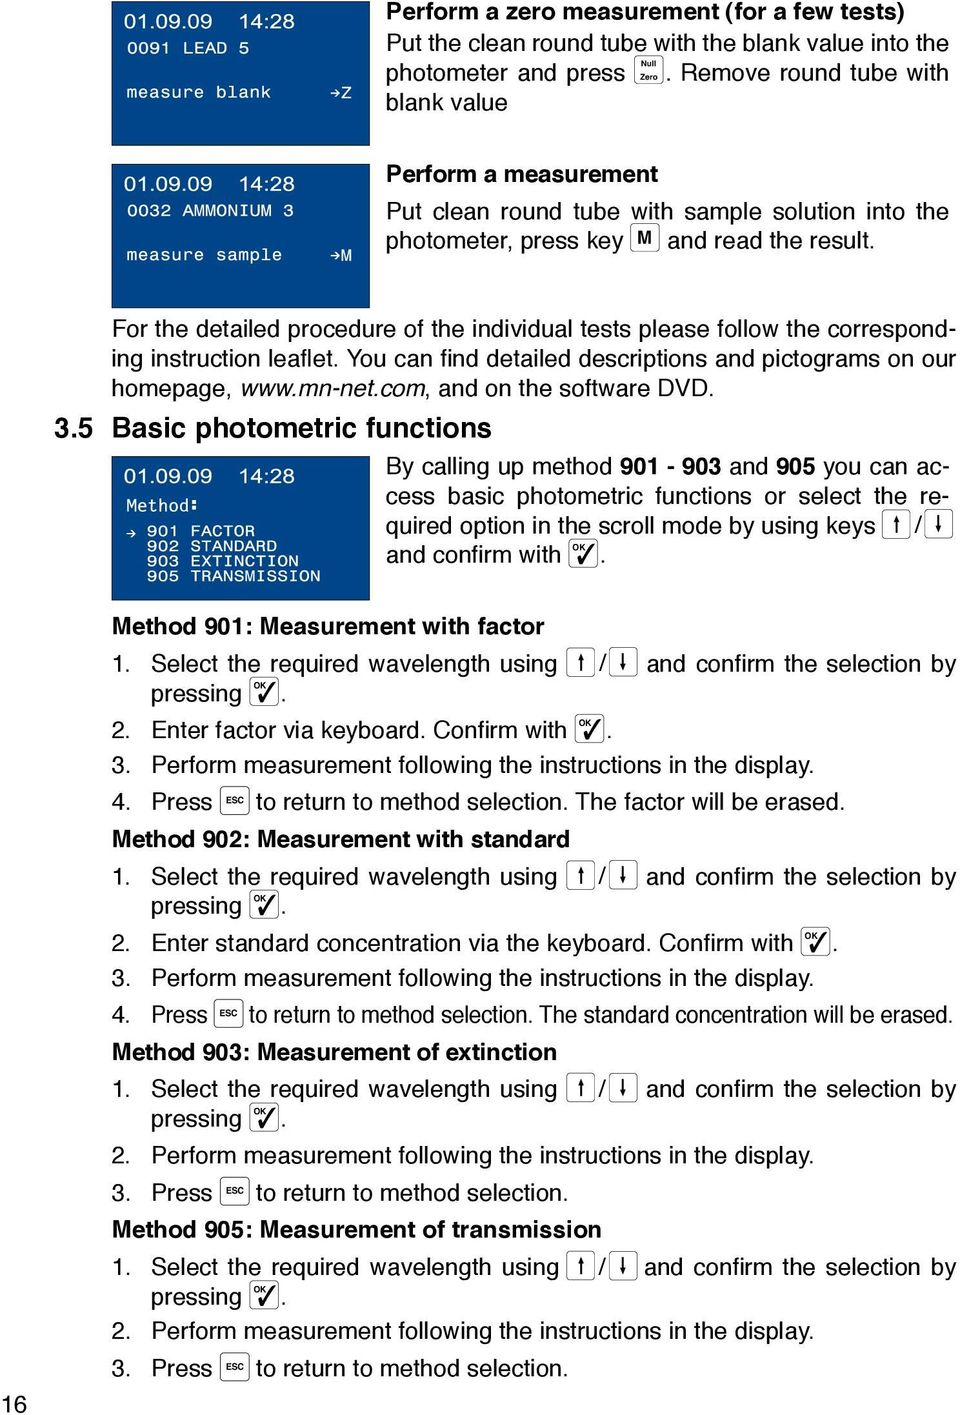 For the detailed procedure of the individual tests please follow the corresponding instruction leaflet. You can find detailed descriptions and pictograms on our homepage, www.mn-net.